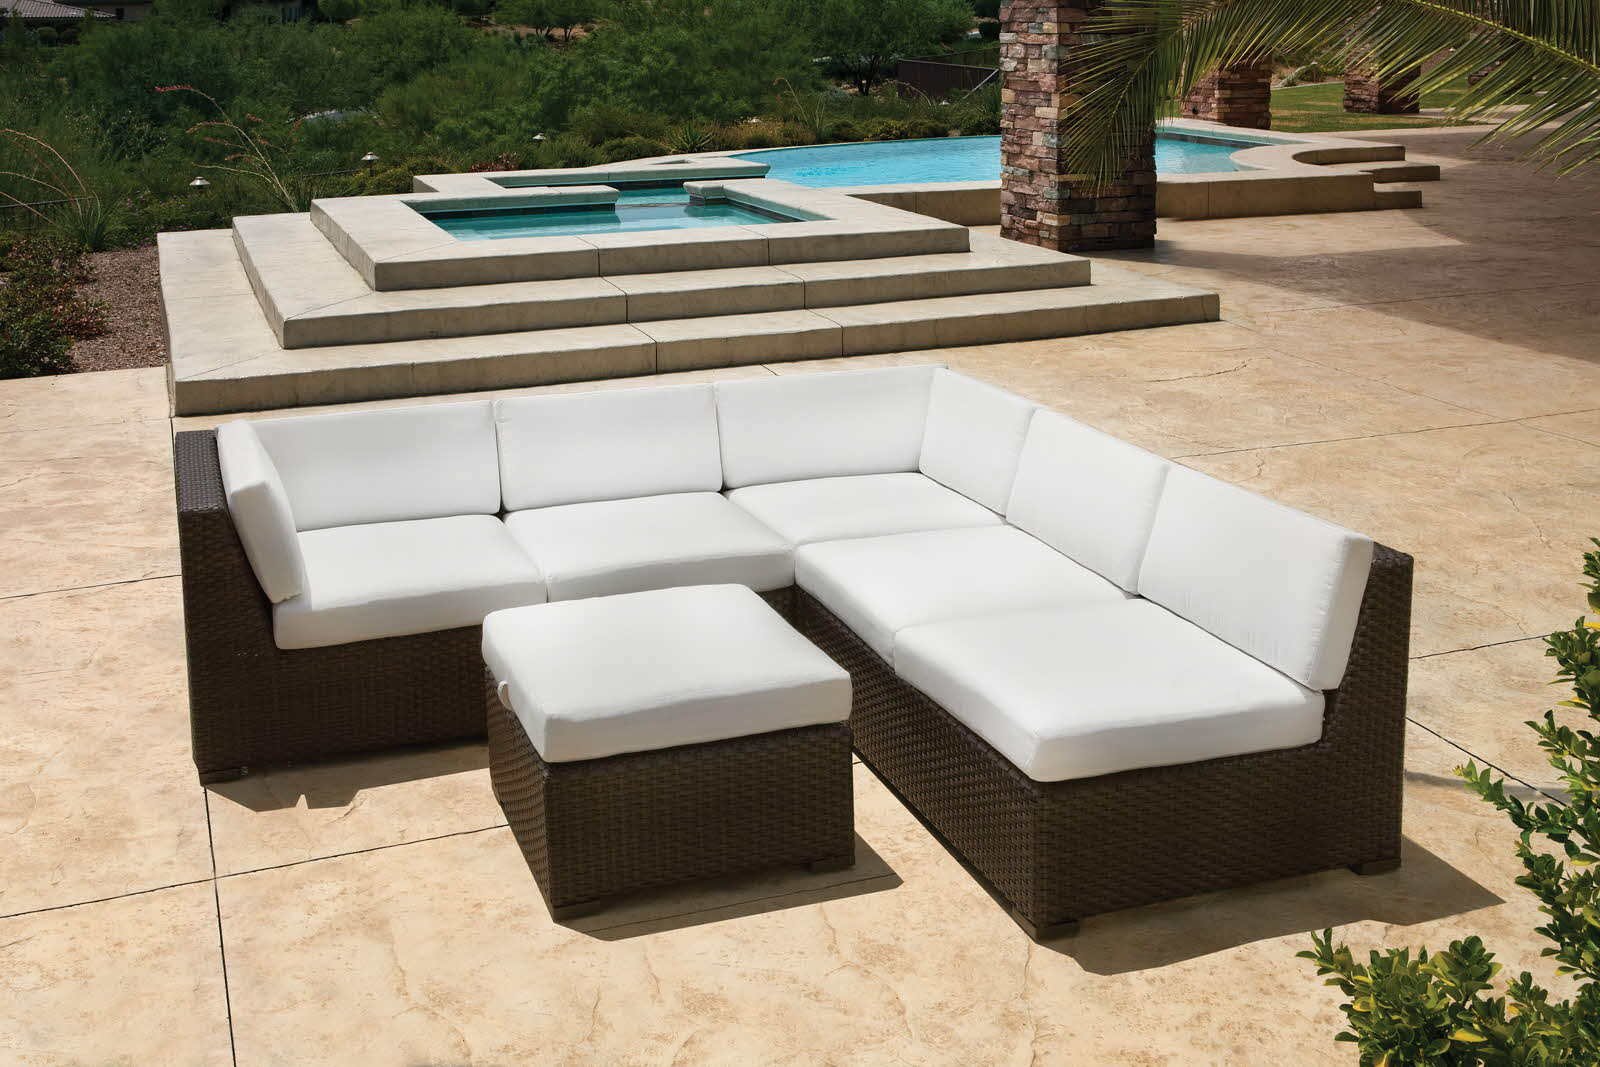 3 amazing tips for picking pool furniture AXLPTJD